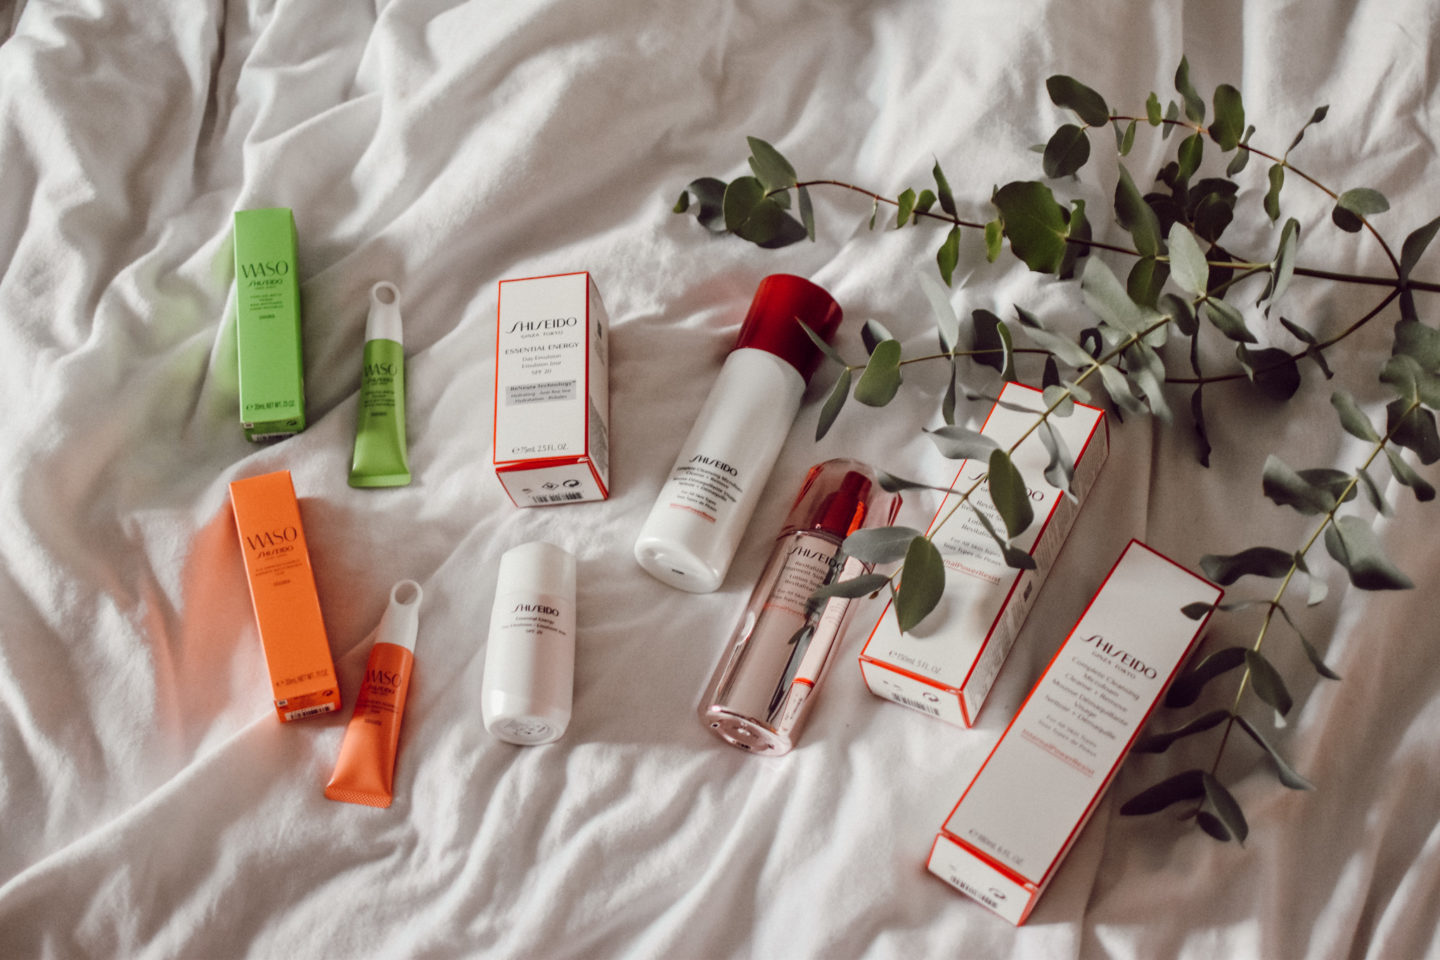 Skincare News by Shiseido and Waso